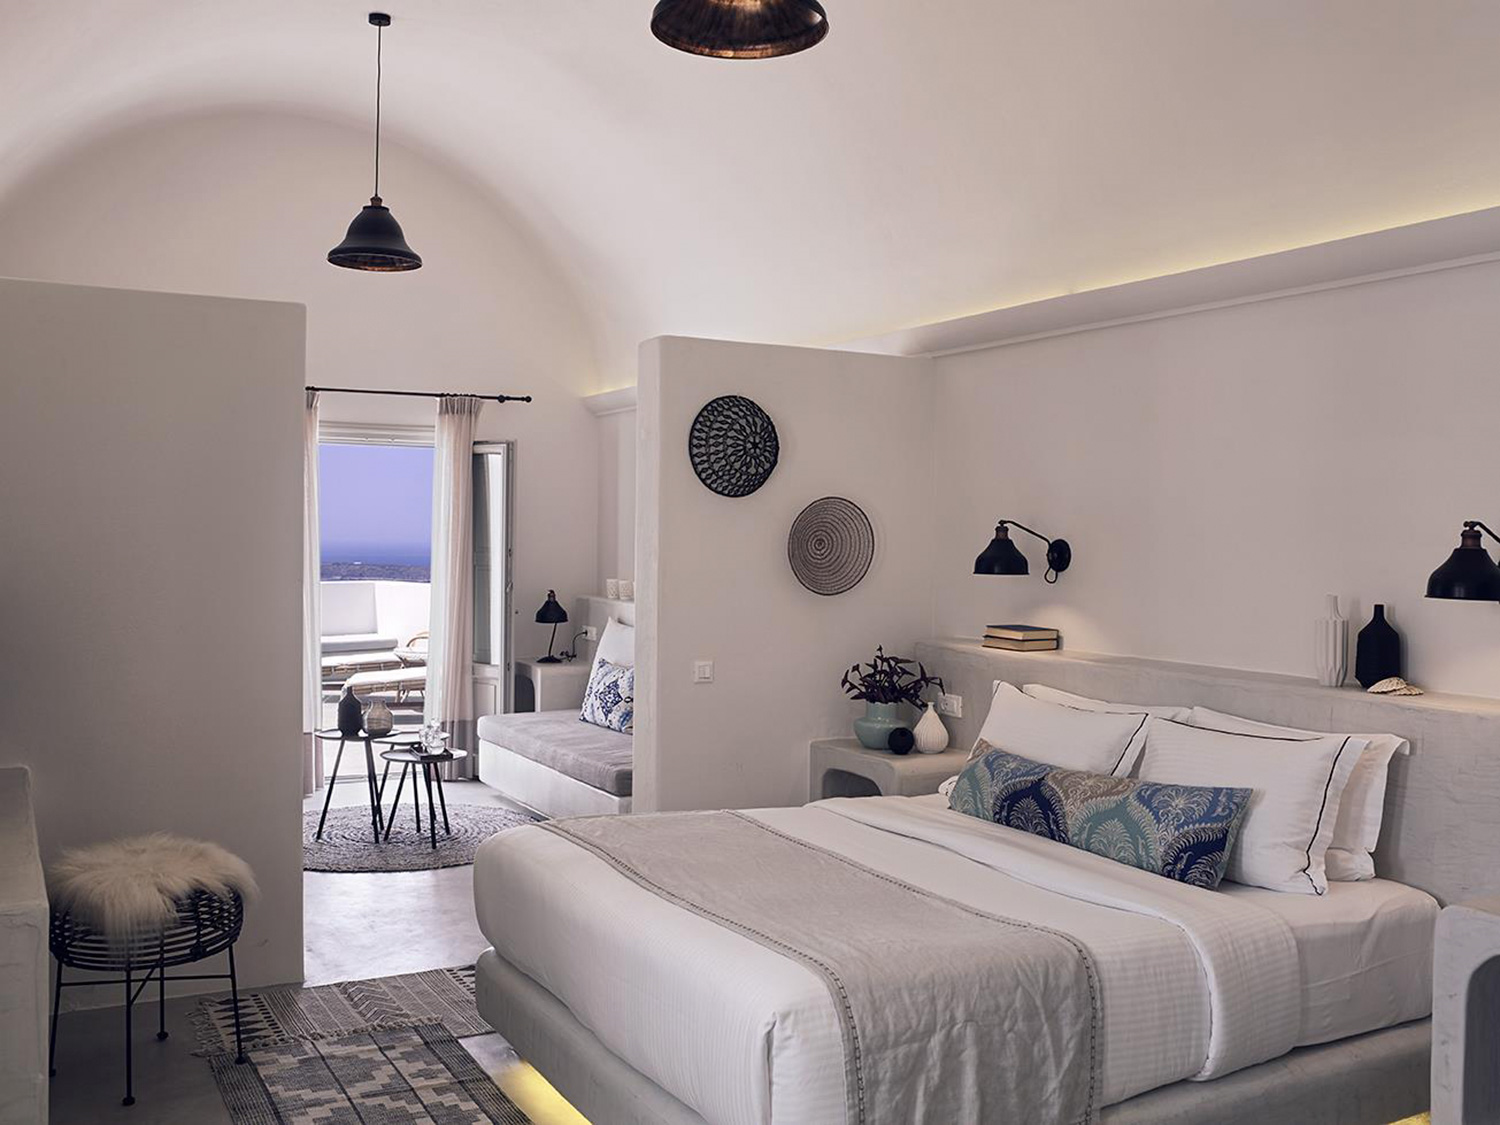 Santo maris oia santorin chiara stella home for Small luxury hotel chains